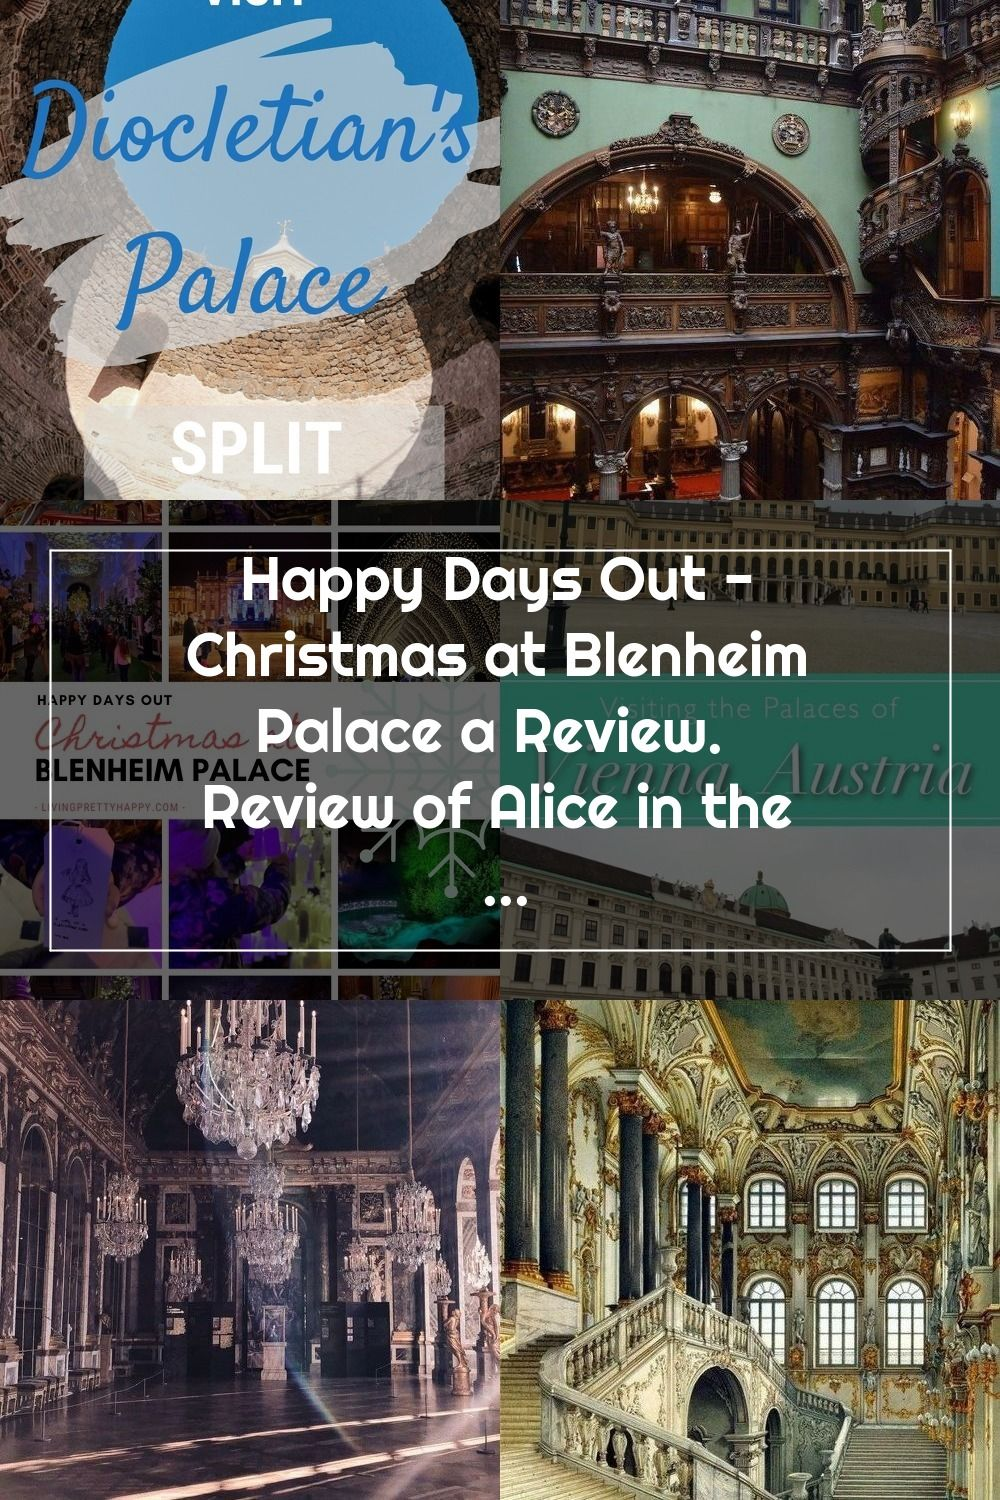 Happy Days Out Christmas At Blenheim Palace A Review Review Of Alice In The Palace Illuminated Ch In 2020 Blenheim Palace Christmas Experiences Christmas Days Out